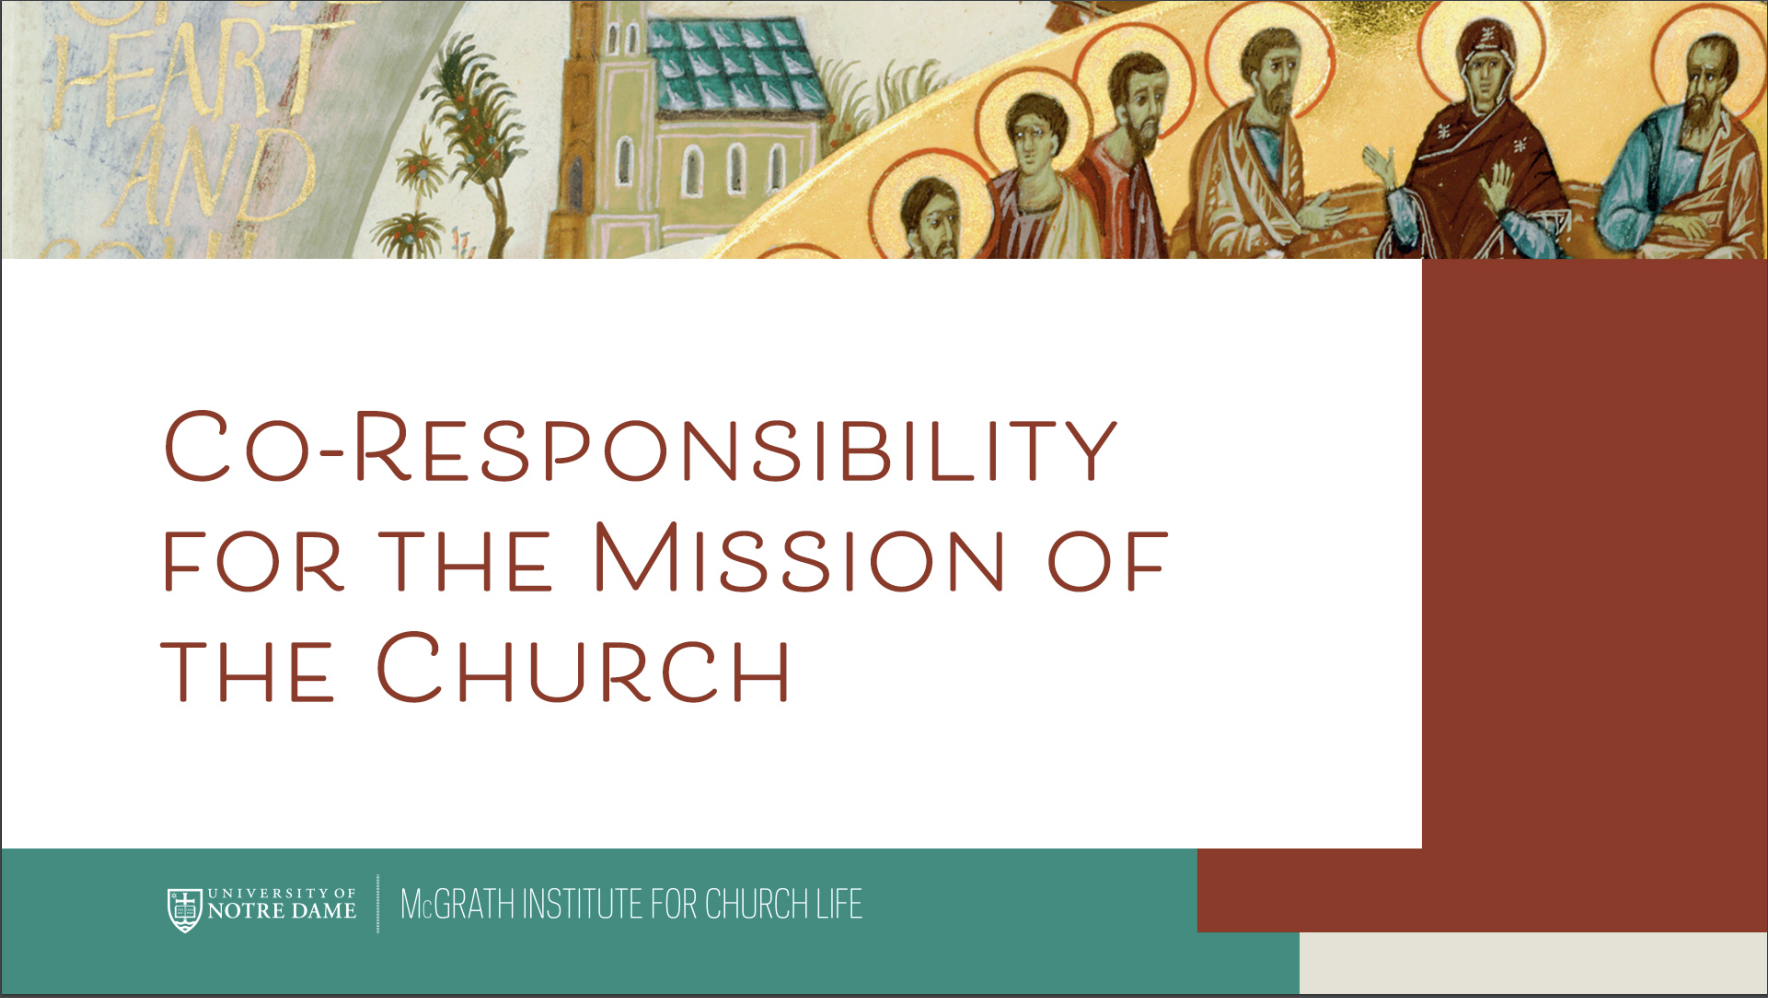 Co-responsibility, not mere collaboration, is necessary to promote Church's mission, says theologian